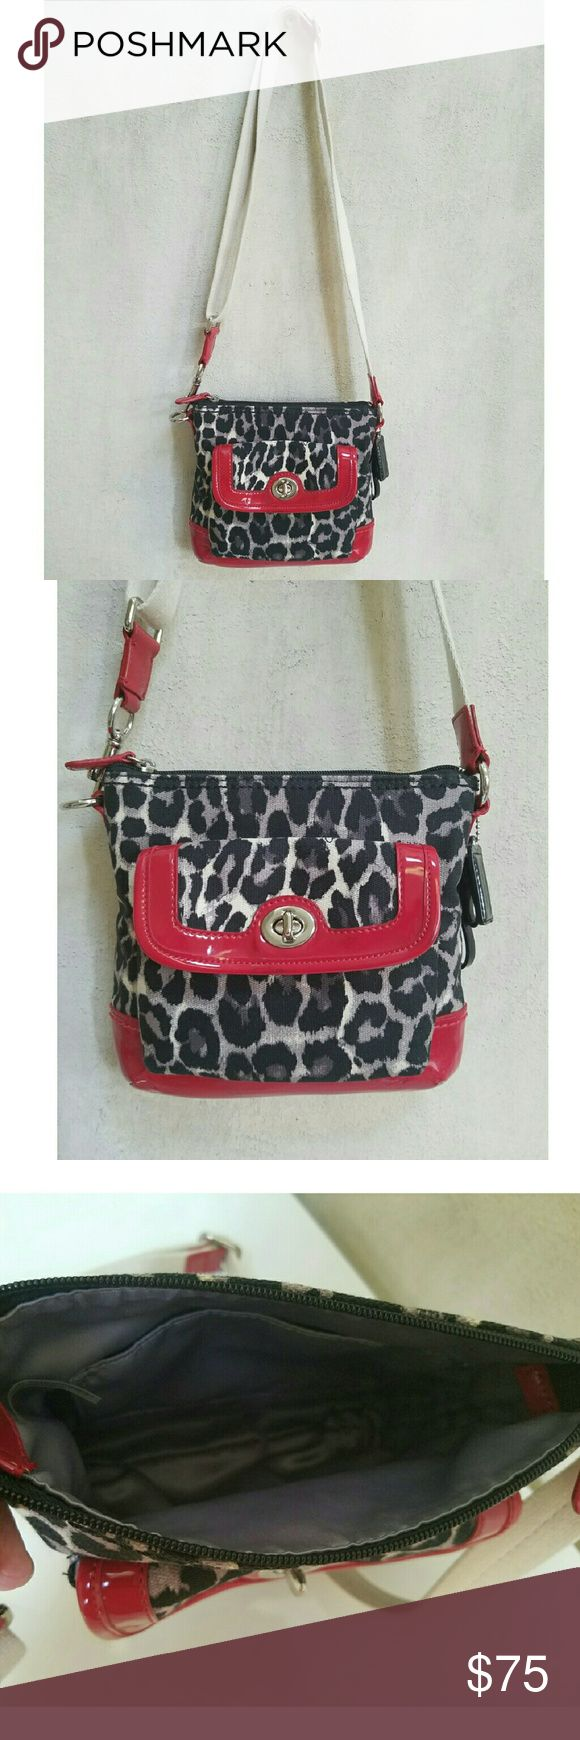 black and gray coach online factory outlet efoz  COACH red patent ocelot swingpack crossbody Small crossbody The is a red  ocelot Coach swingpack